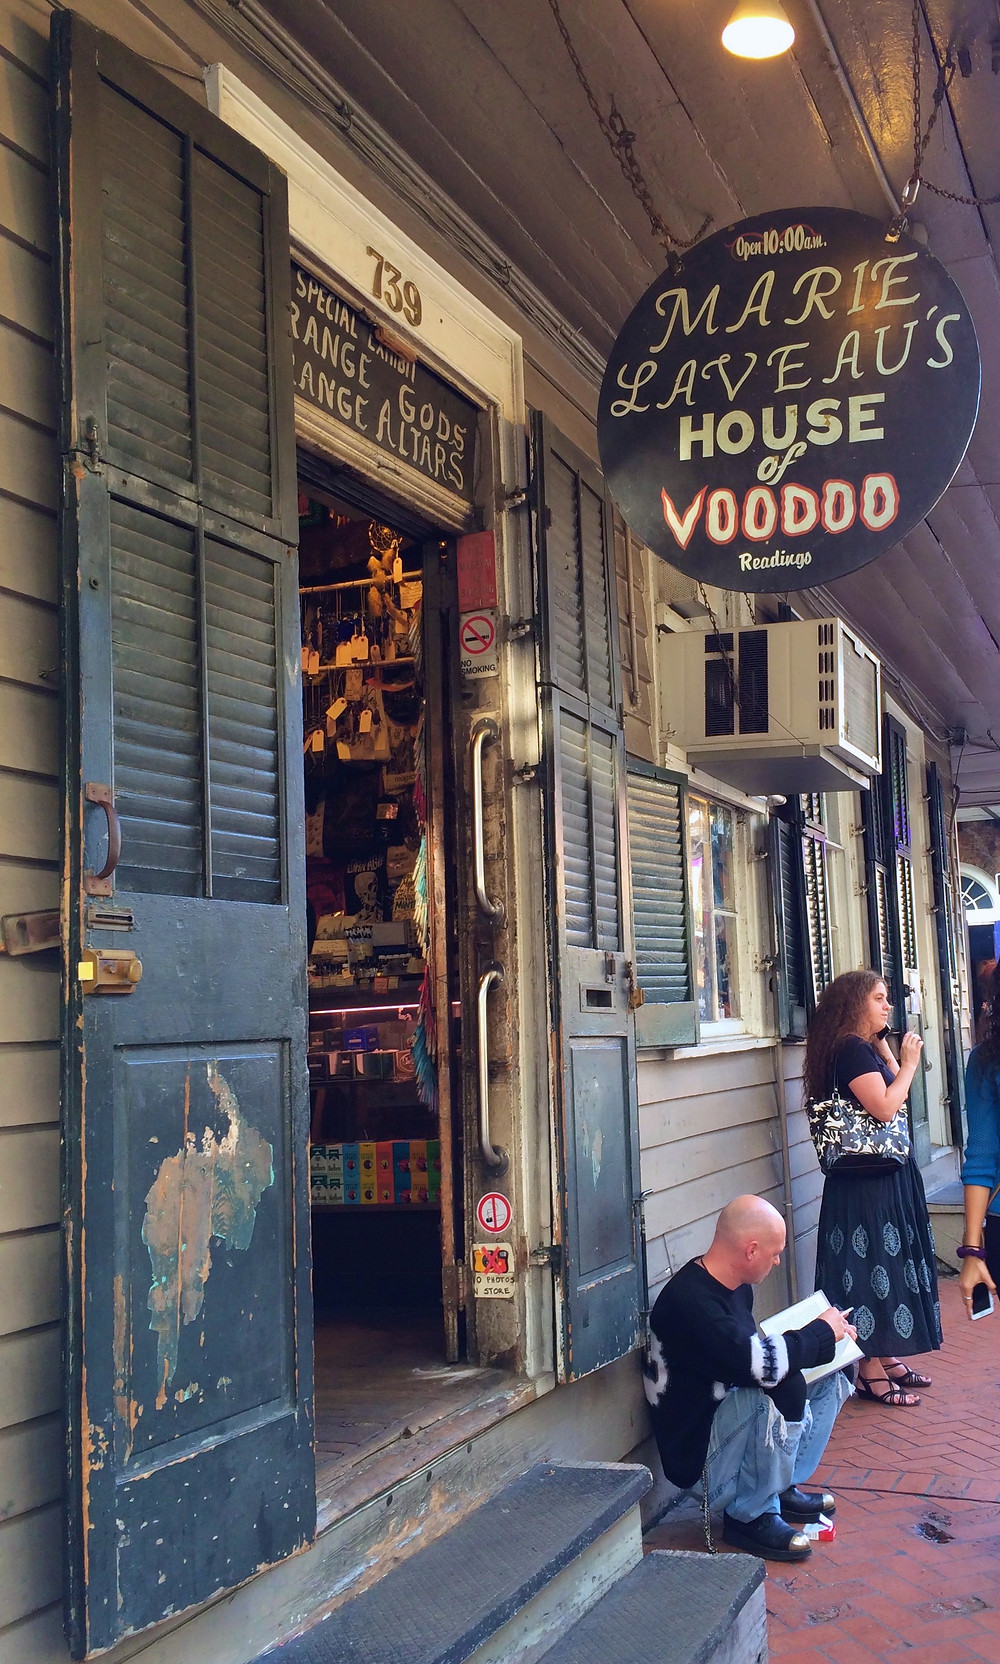 Marie Laveau's House of Voodoo I Voodoo Shop I New Orleans Travel Guide I Nicole Riccardo